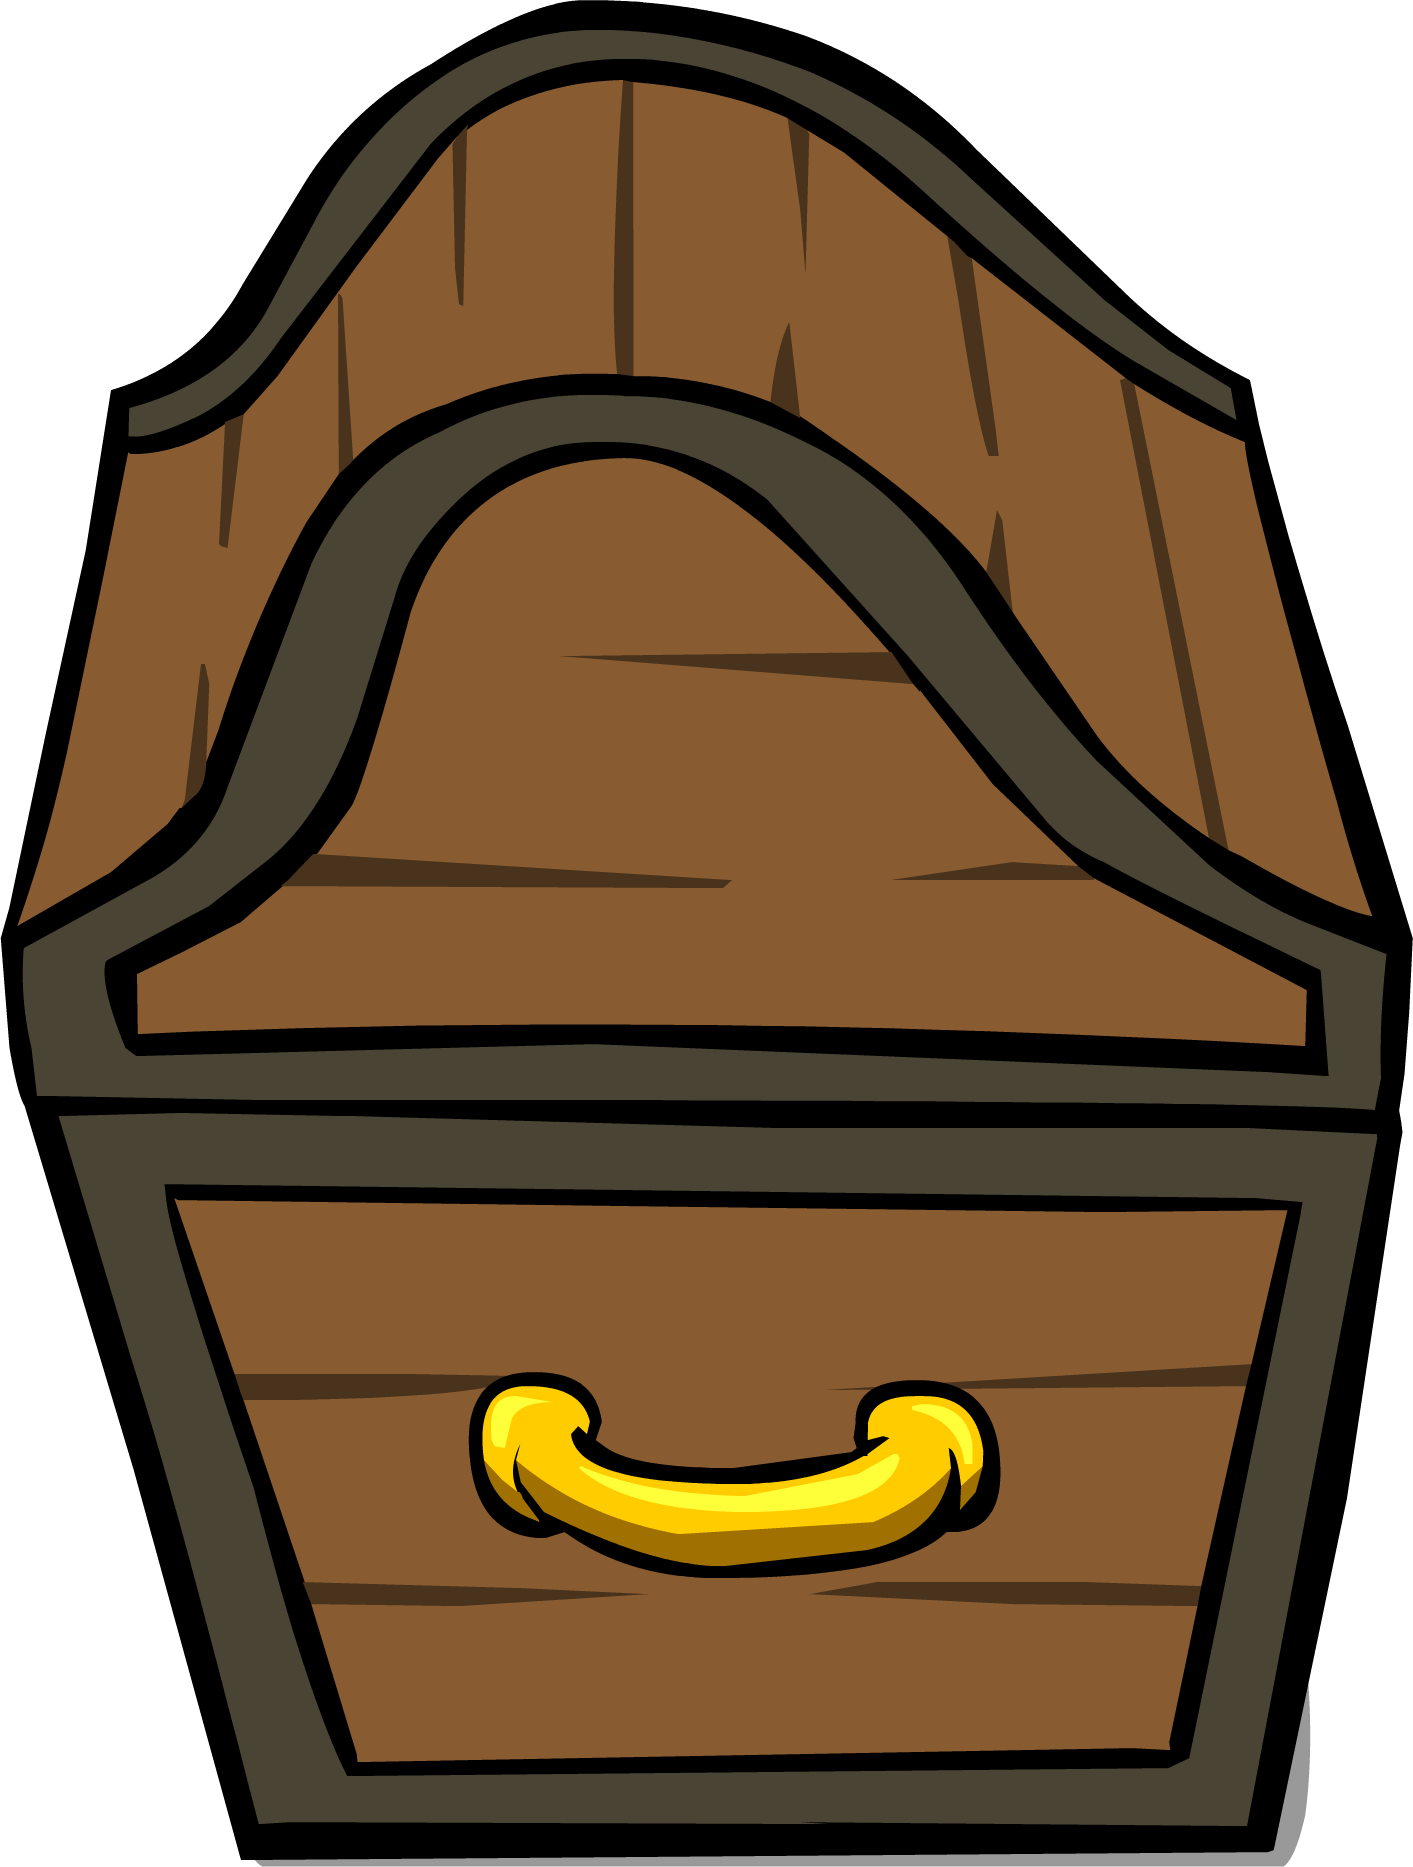 Png images free download. Treasure clipart community chest